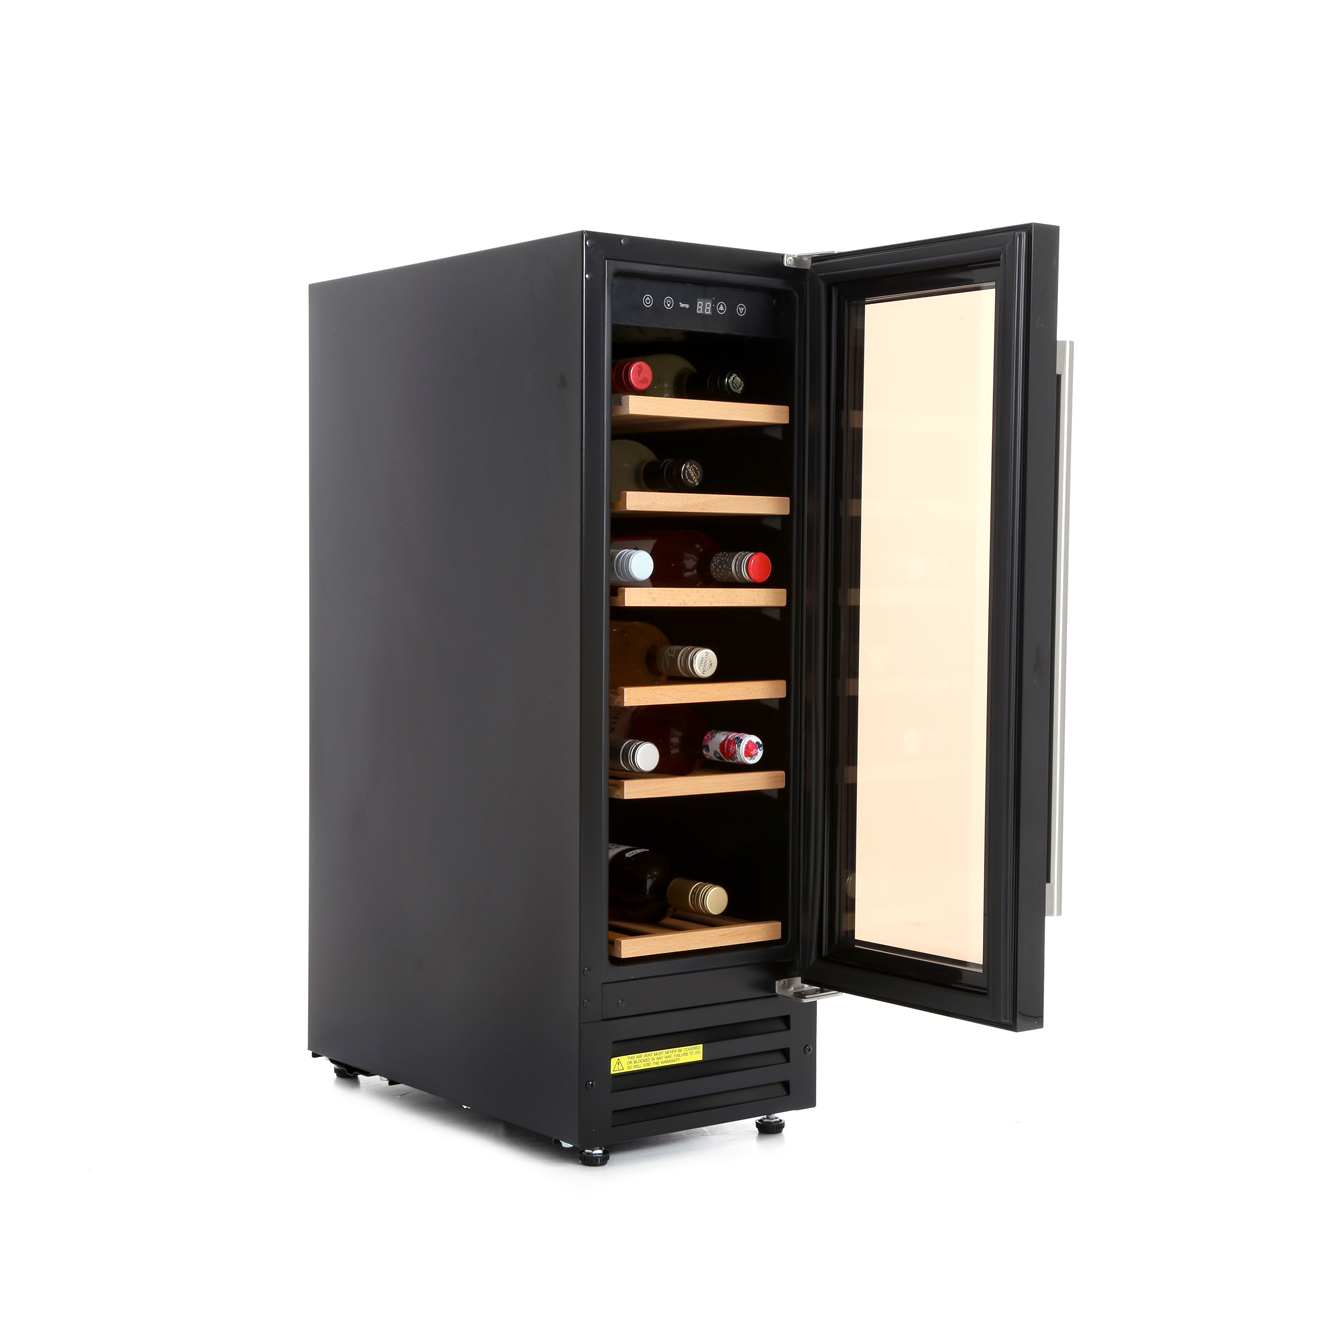 Buy New World 300blkwc Wine Cooler 444443282 Black